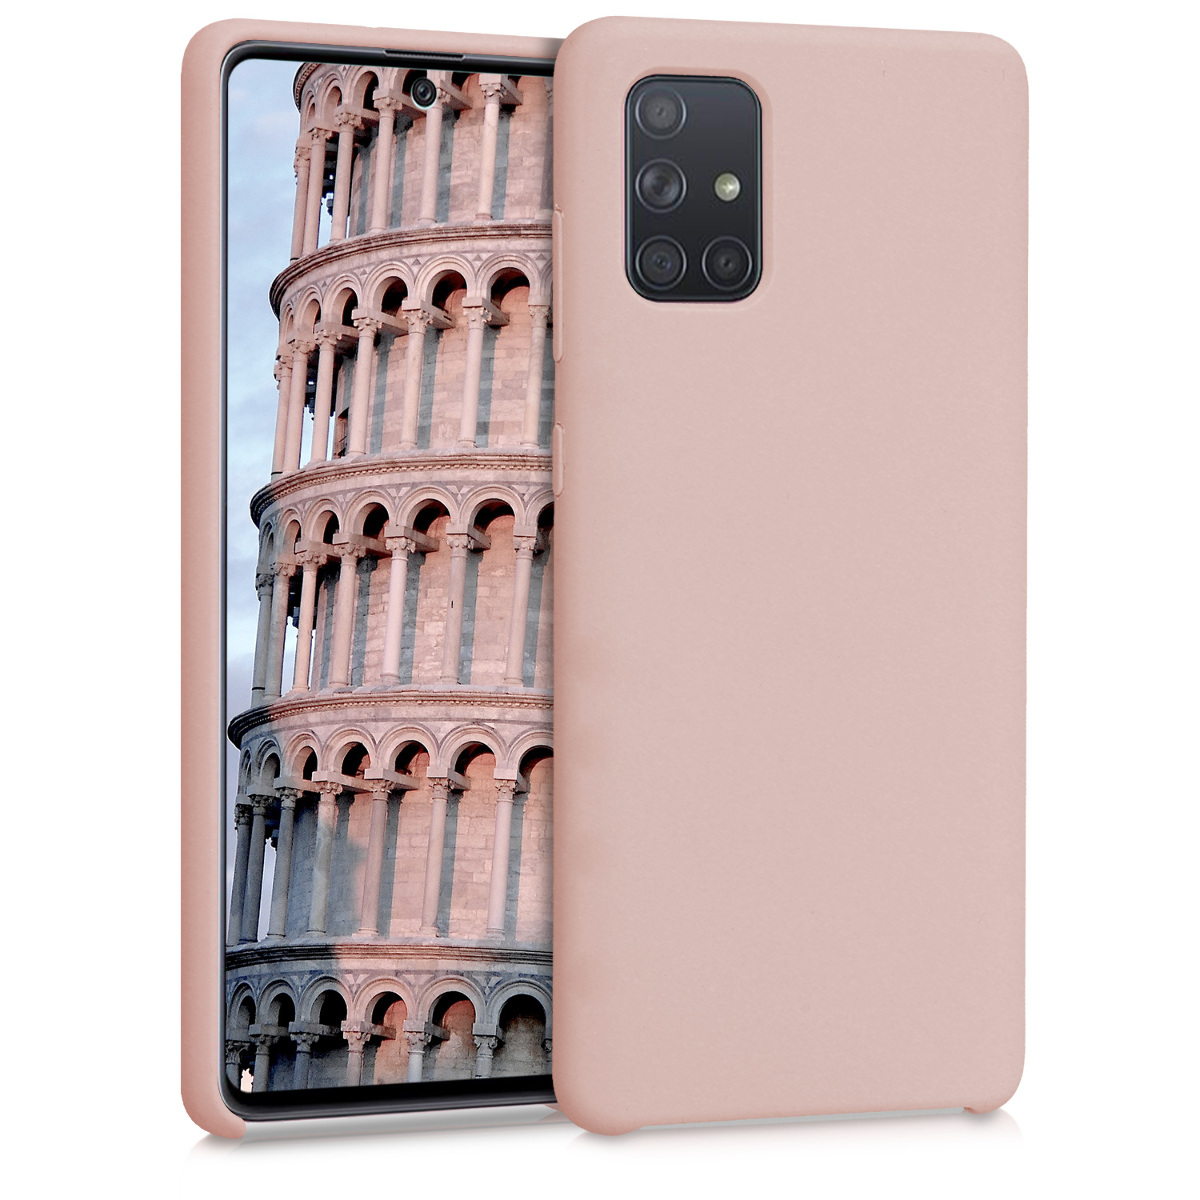 KW Θήκη Σιλικόνης Samsung Galaxy A71 - Soft Flexible Rubber Protective Cover - Antique Pink Matte (51209.52)